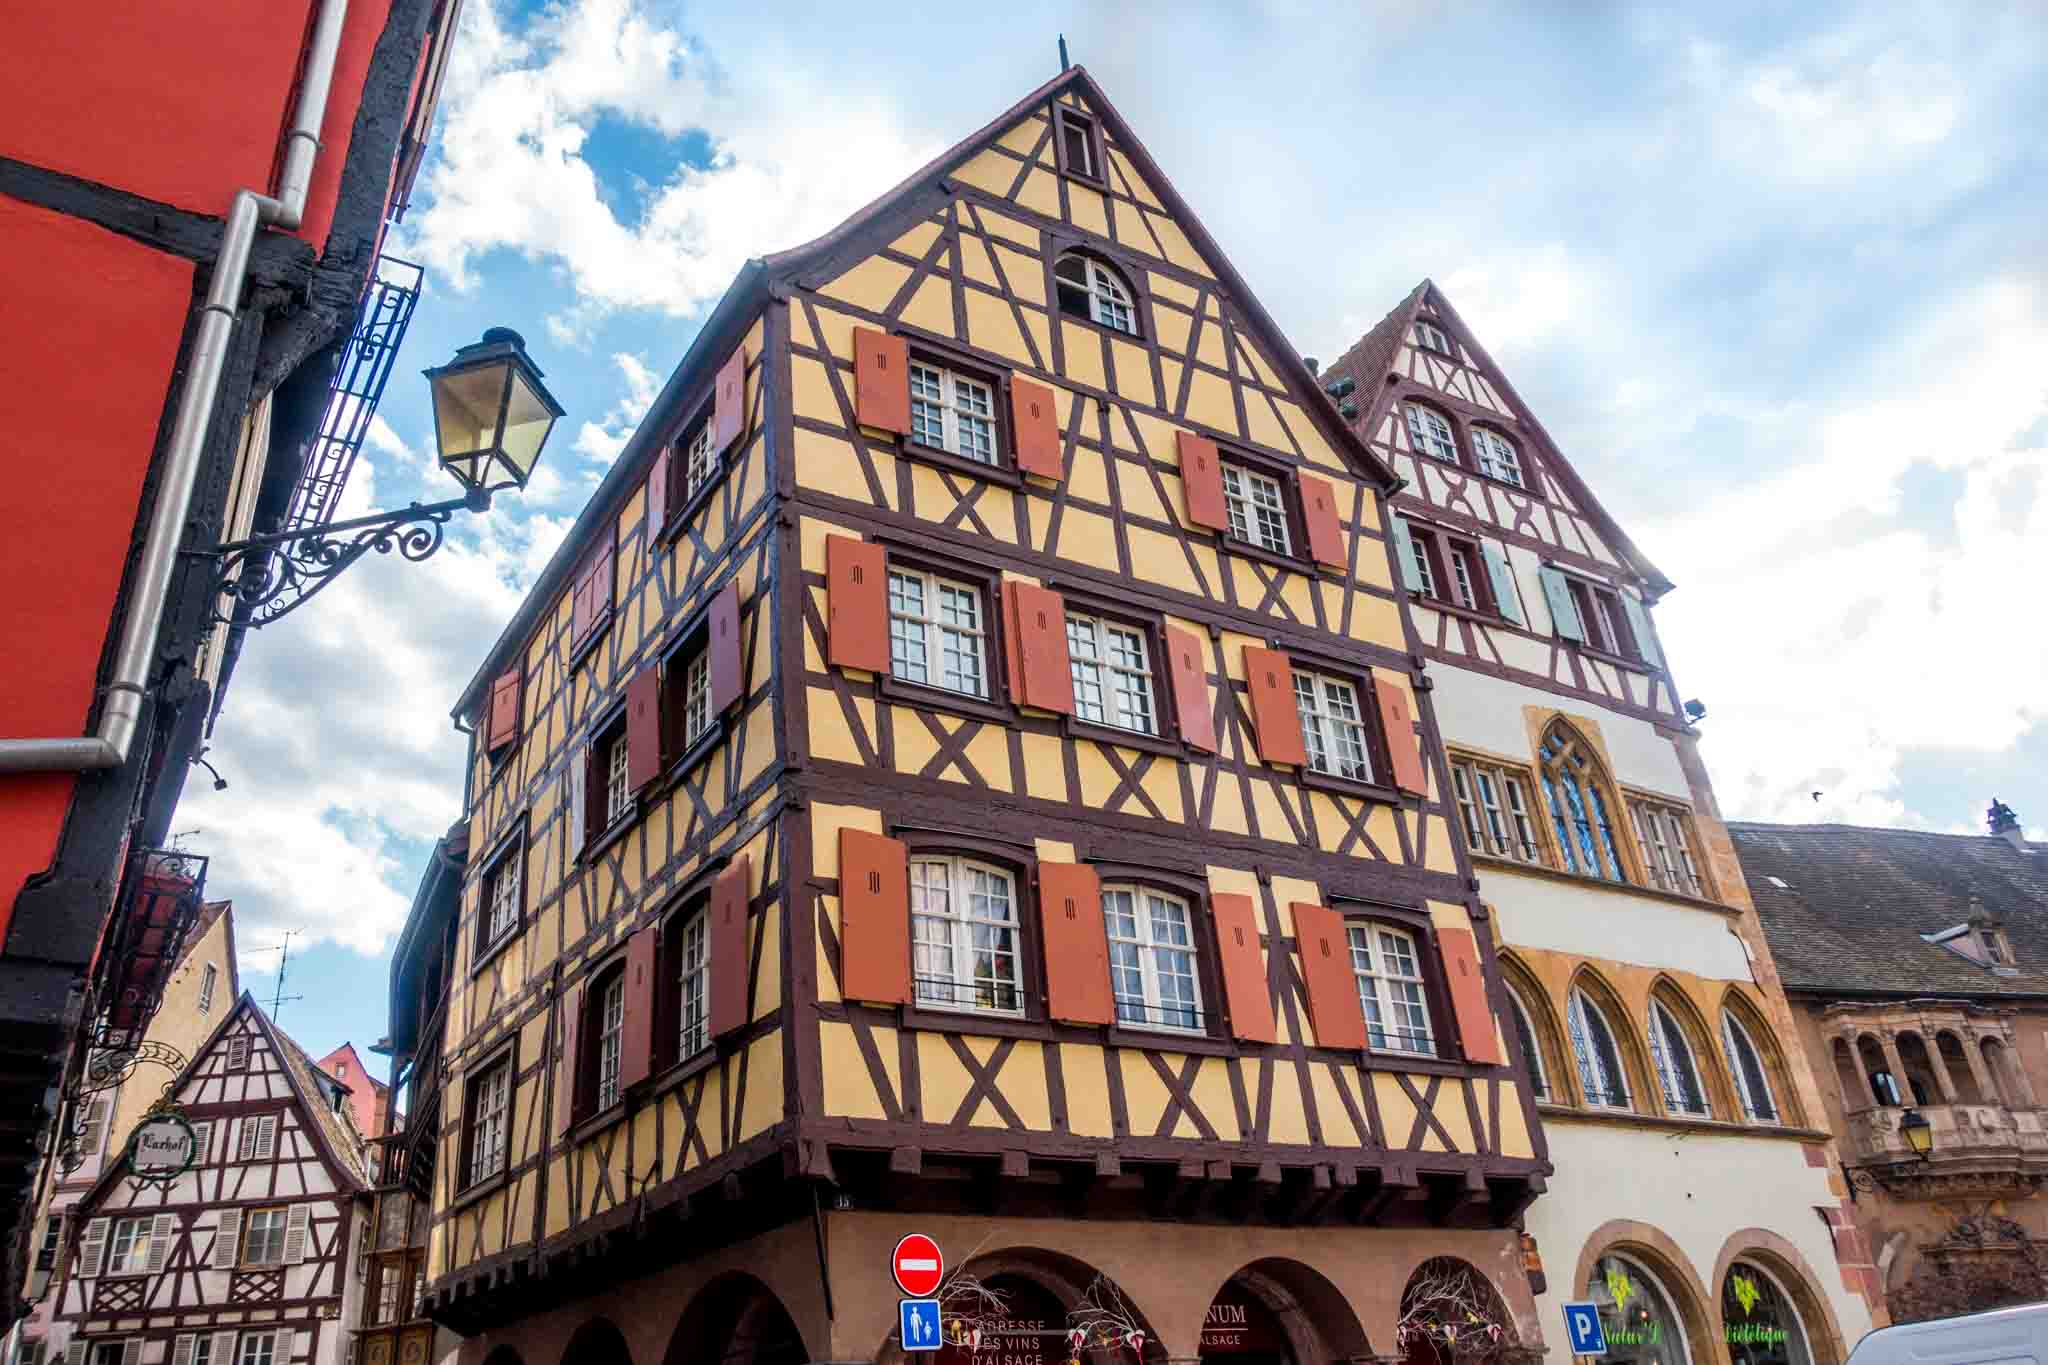 Adolph House, a large white and yellow half-timbered house